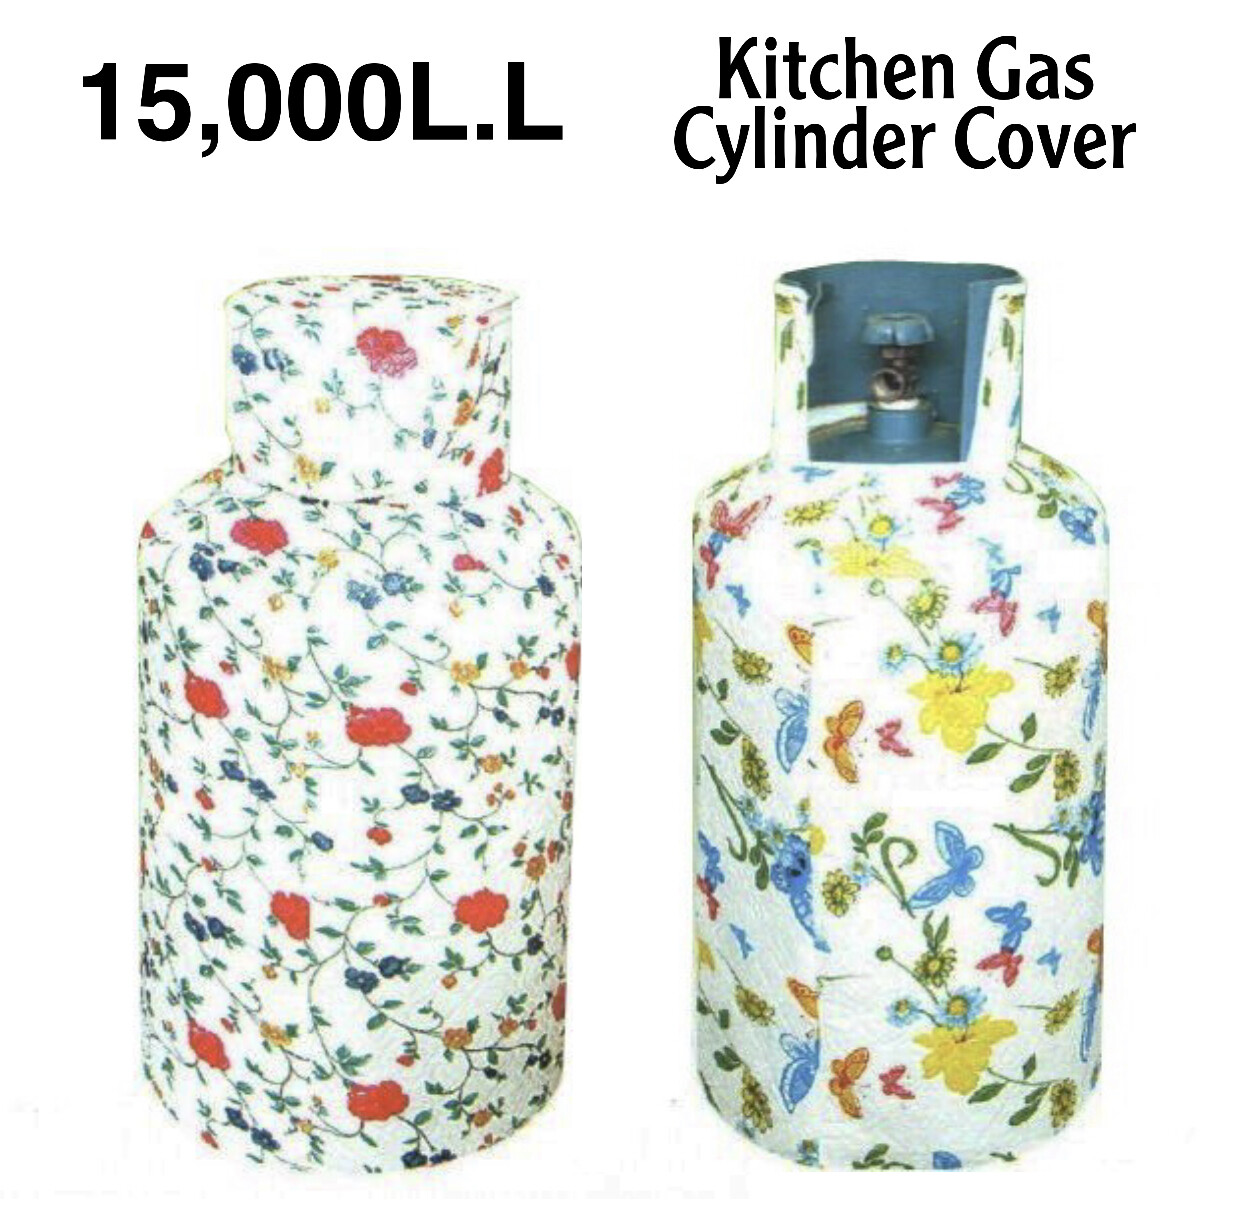 Gas Cylinder Cover